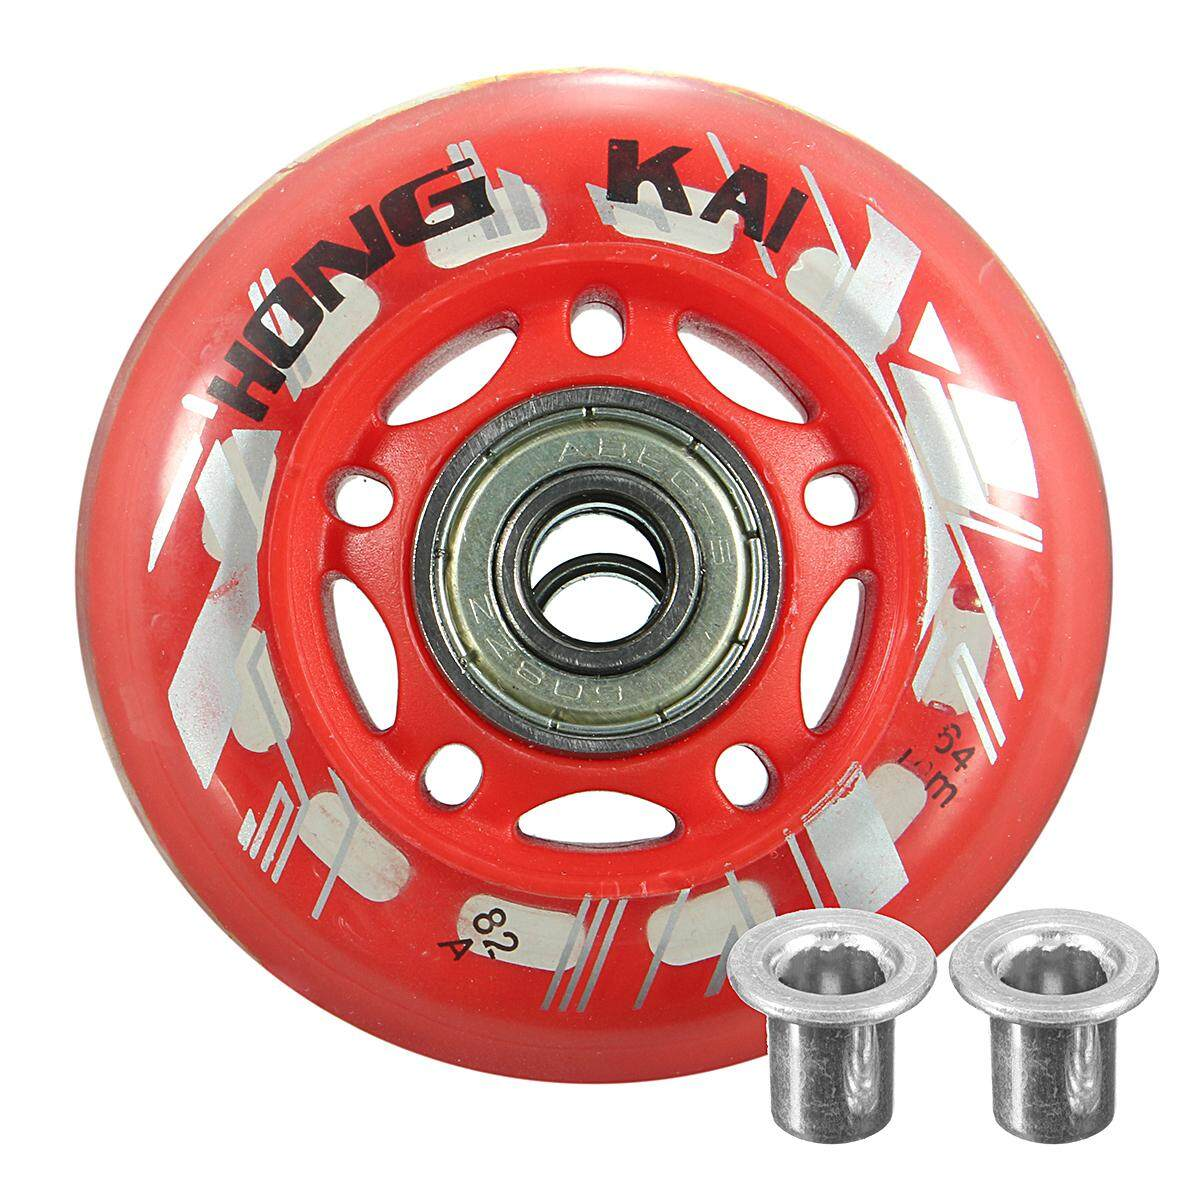 Replacement Skate Wheel Skating Inline Skate Shoes 64mm Dia 8mm By Audew.